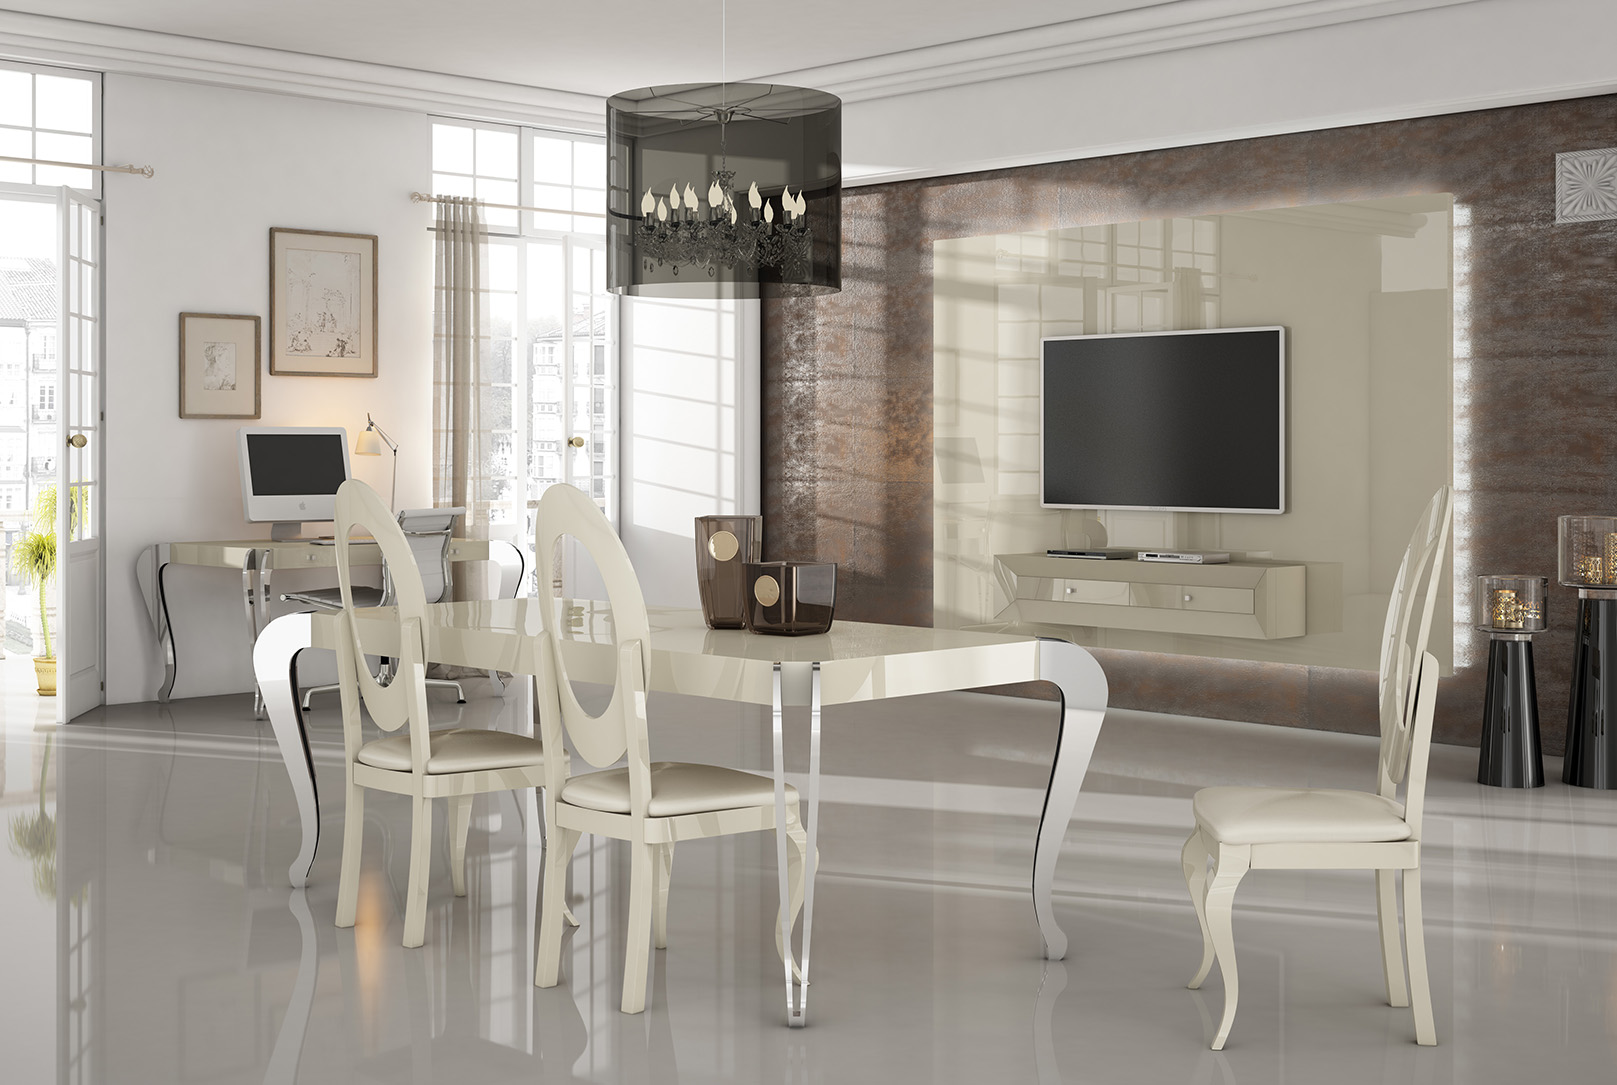 Brands Franco Kora Dining and Wall Units, Spain KORA 10